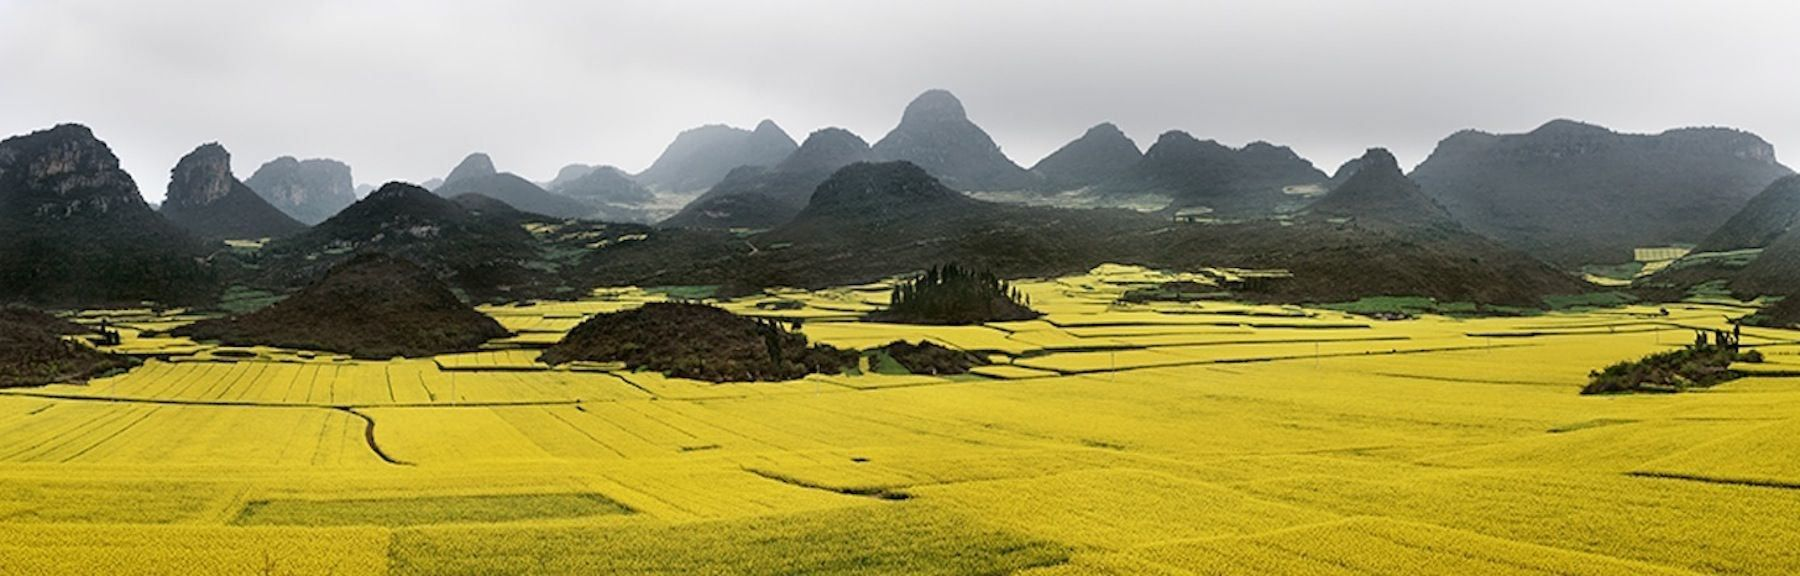 Canola Fields #2, Luoping, Yunnan Province, China, 2011, chromogenic color print,30.8 x 96 inches/78.2 x 243.8 cm